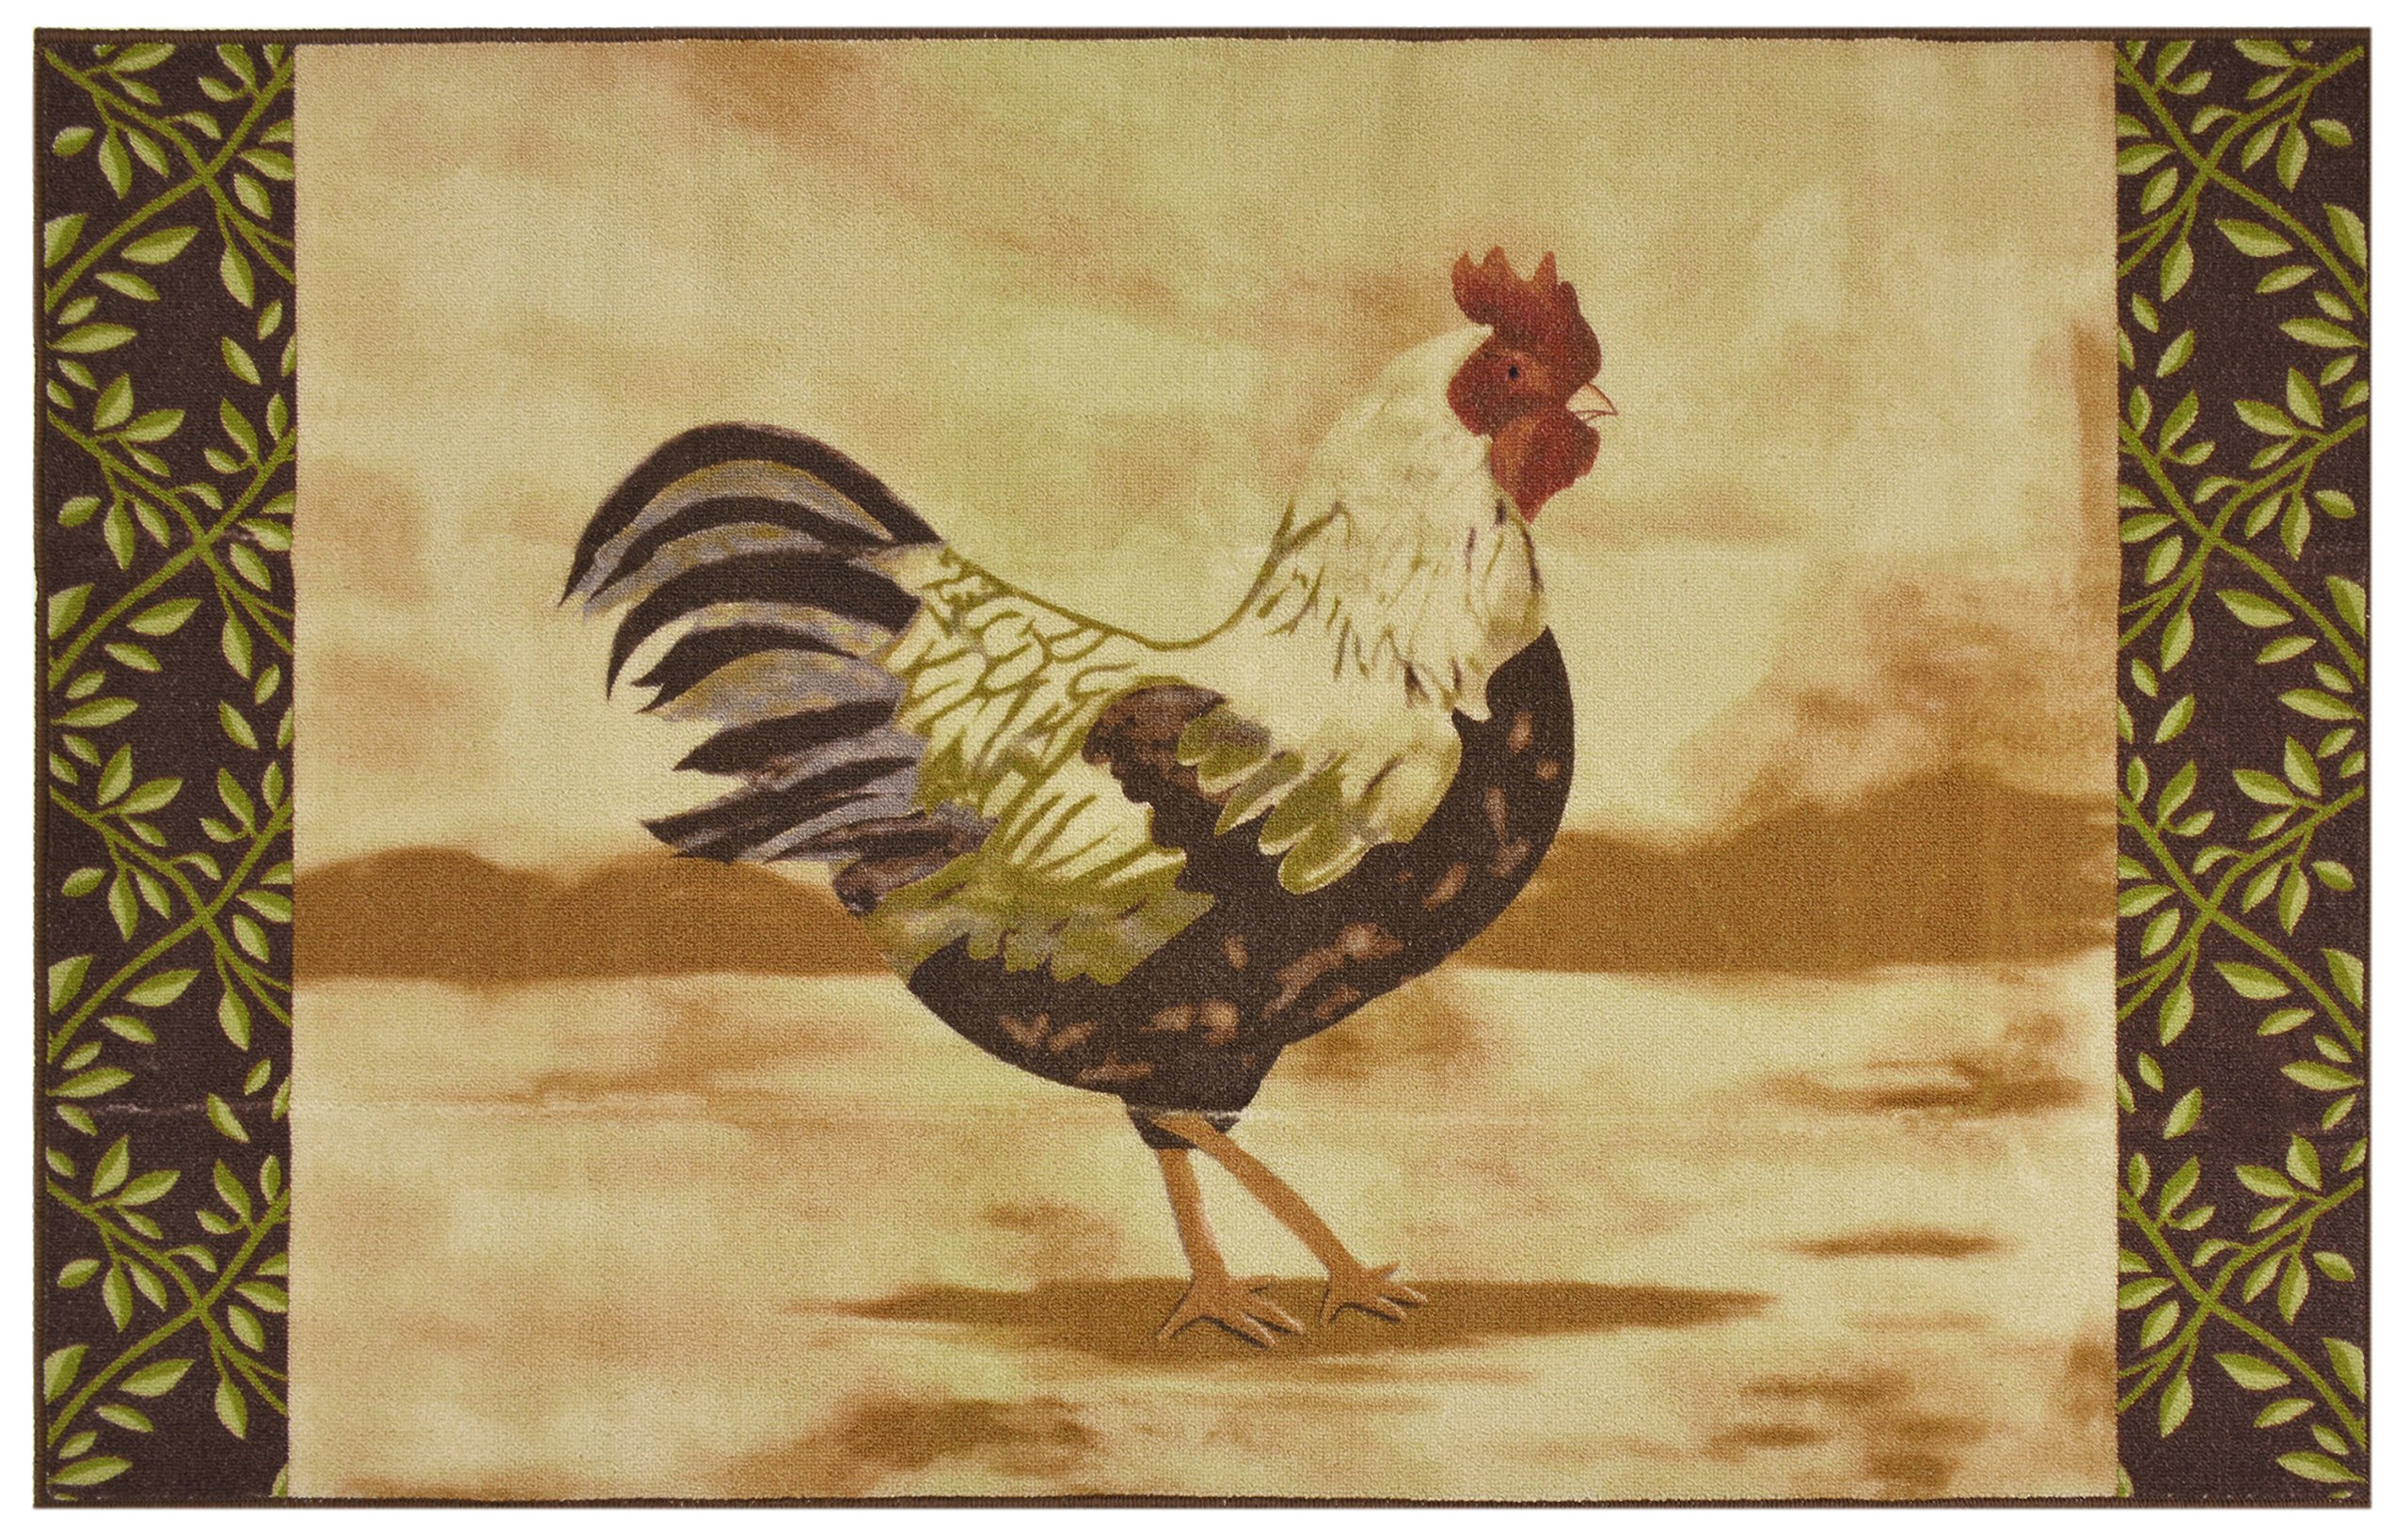 Kitchen Rooster Area Rug Country Design Slip Skid Resistant Rubber Backing Anti Bacterial (Beige Brown, 2'11'' x 4'11'' )